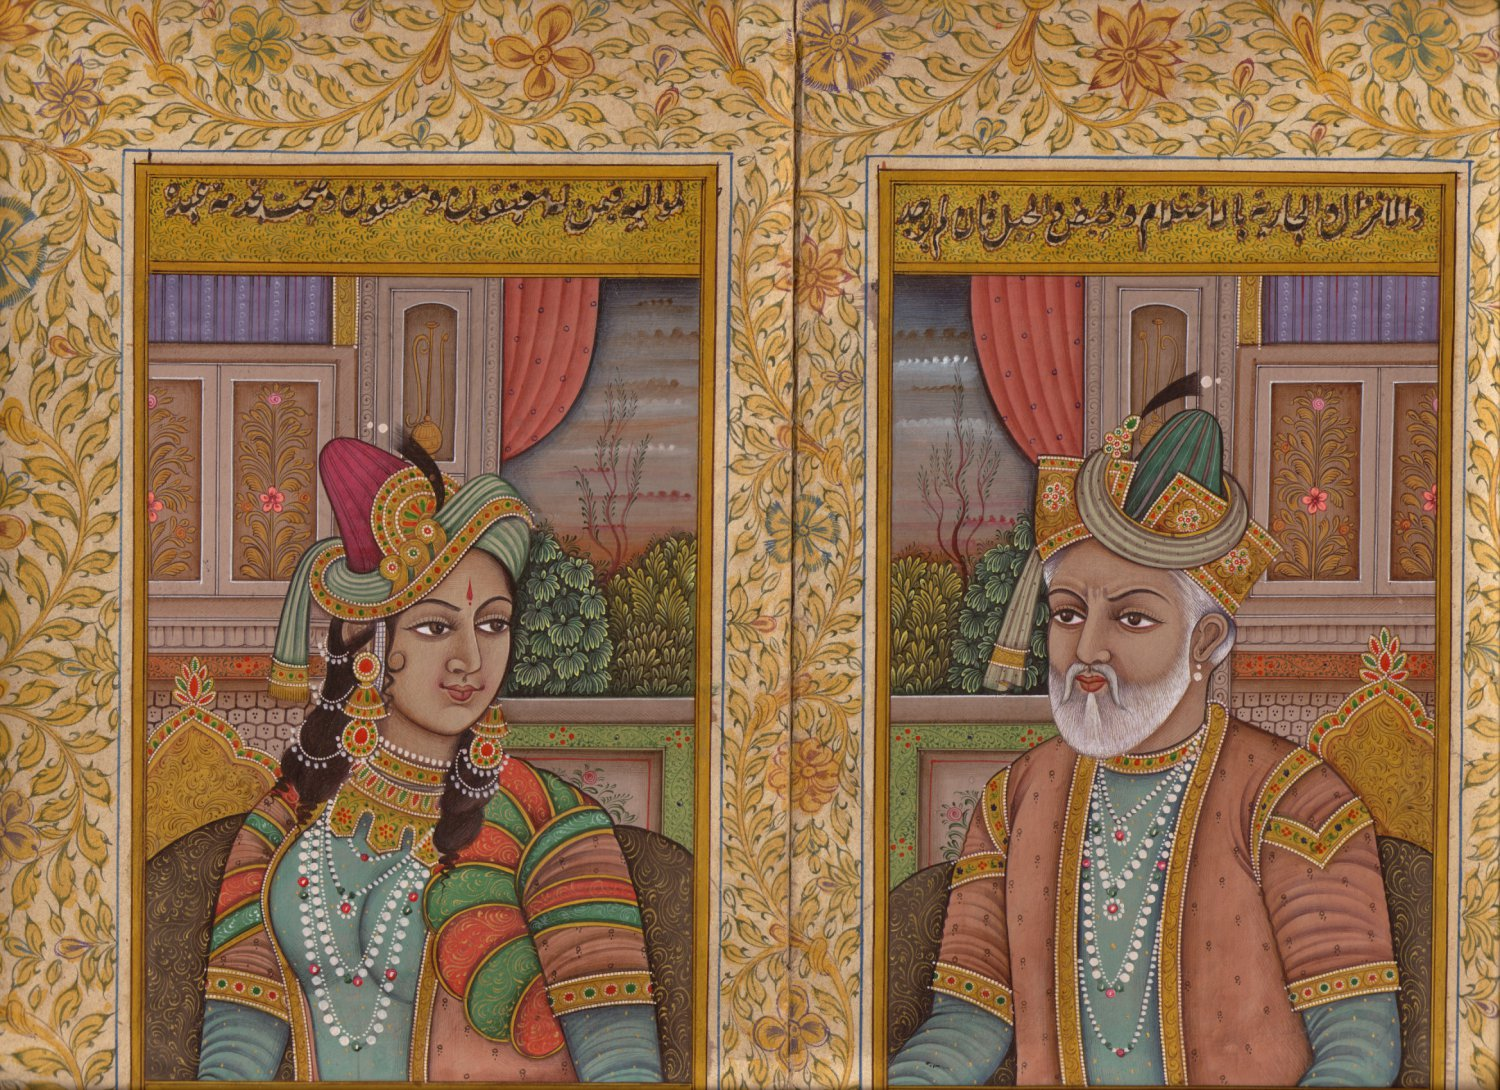 Mughal Empire Art Handmade Moghul Miniature Portrait